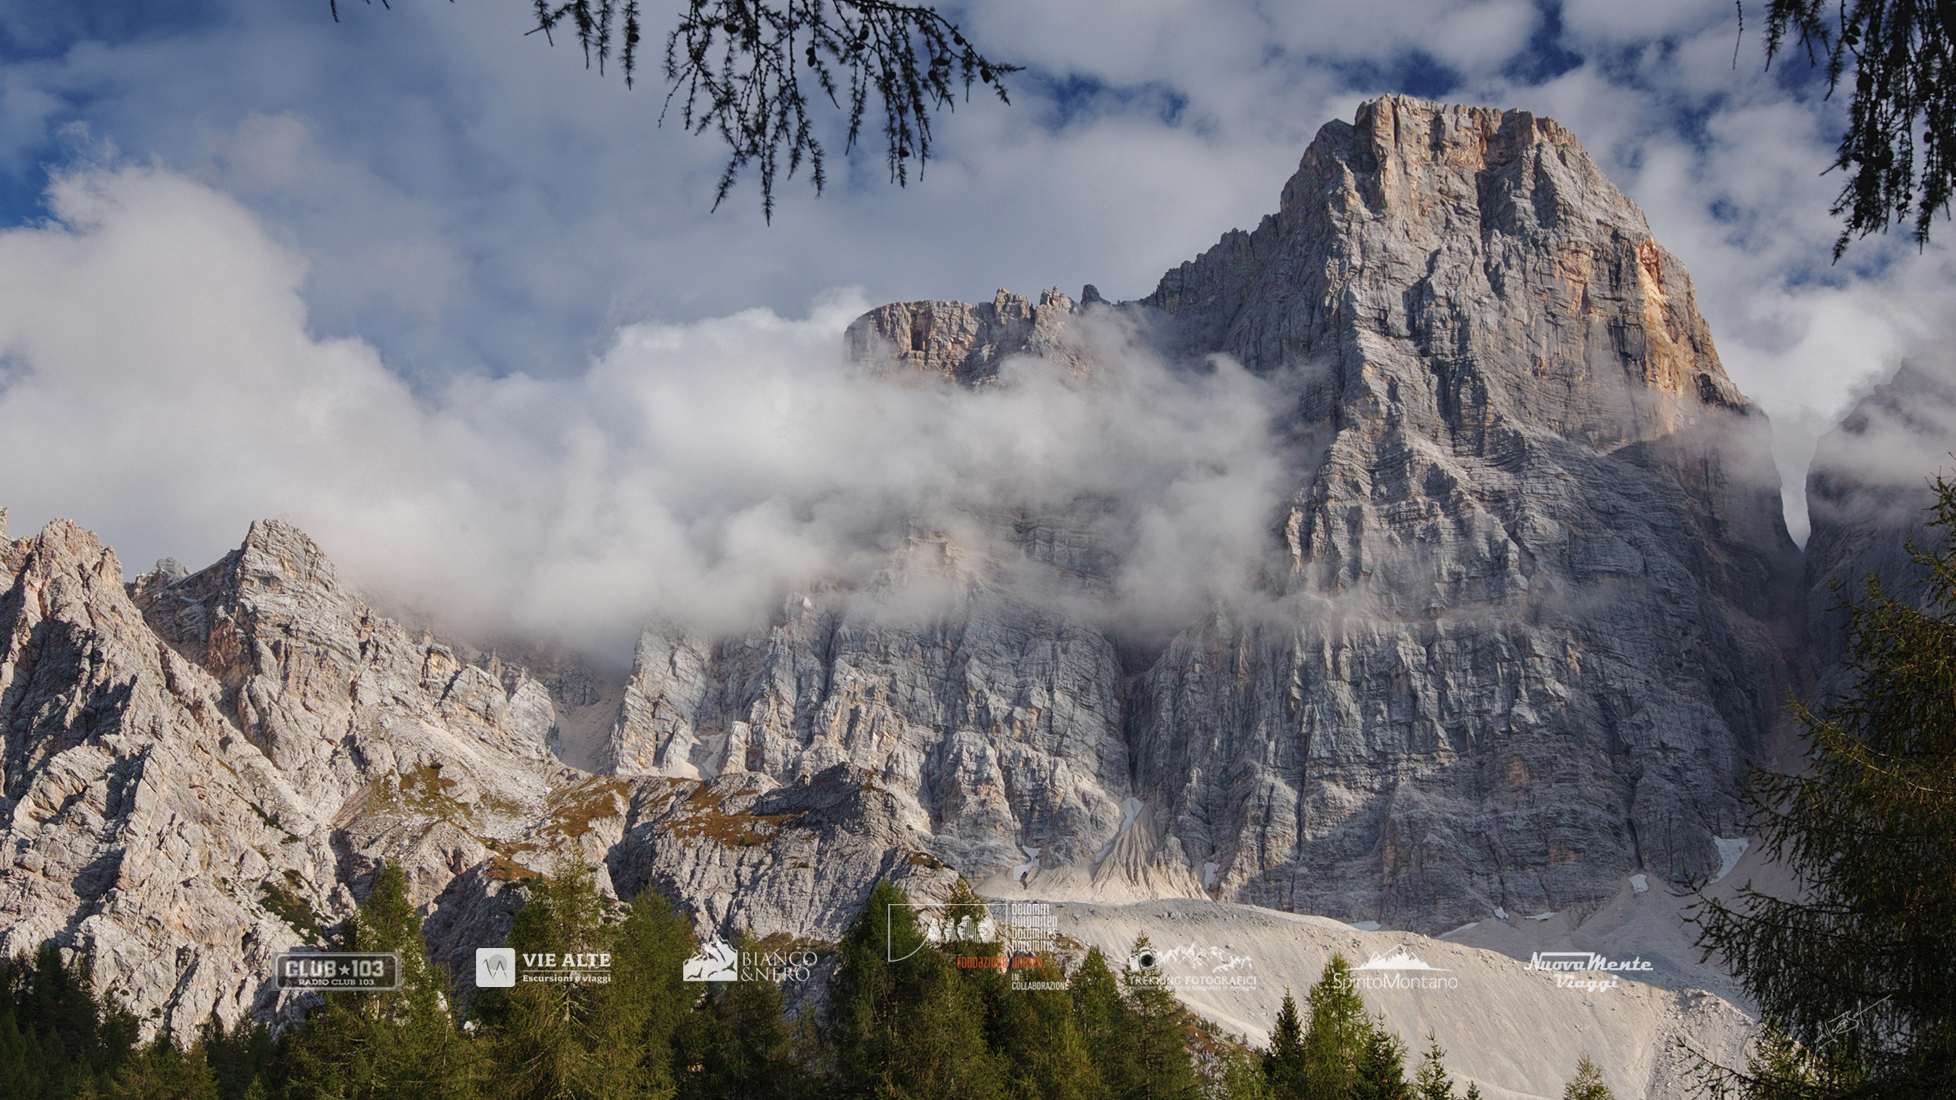 © Aberto Bregani | Best Of Dolomites 2018